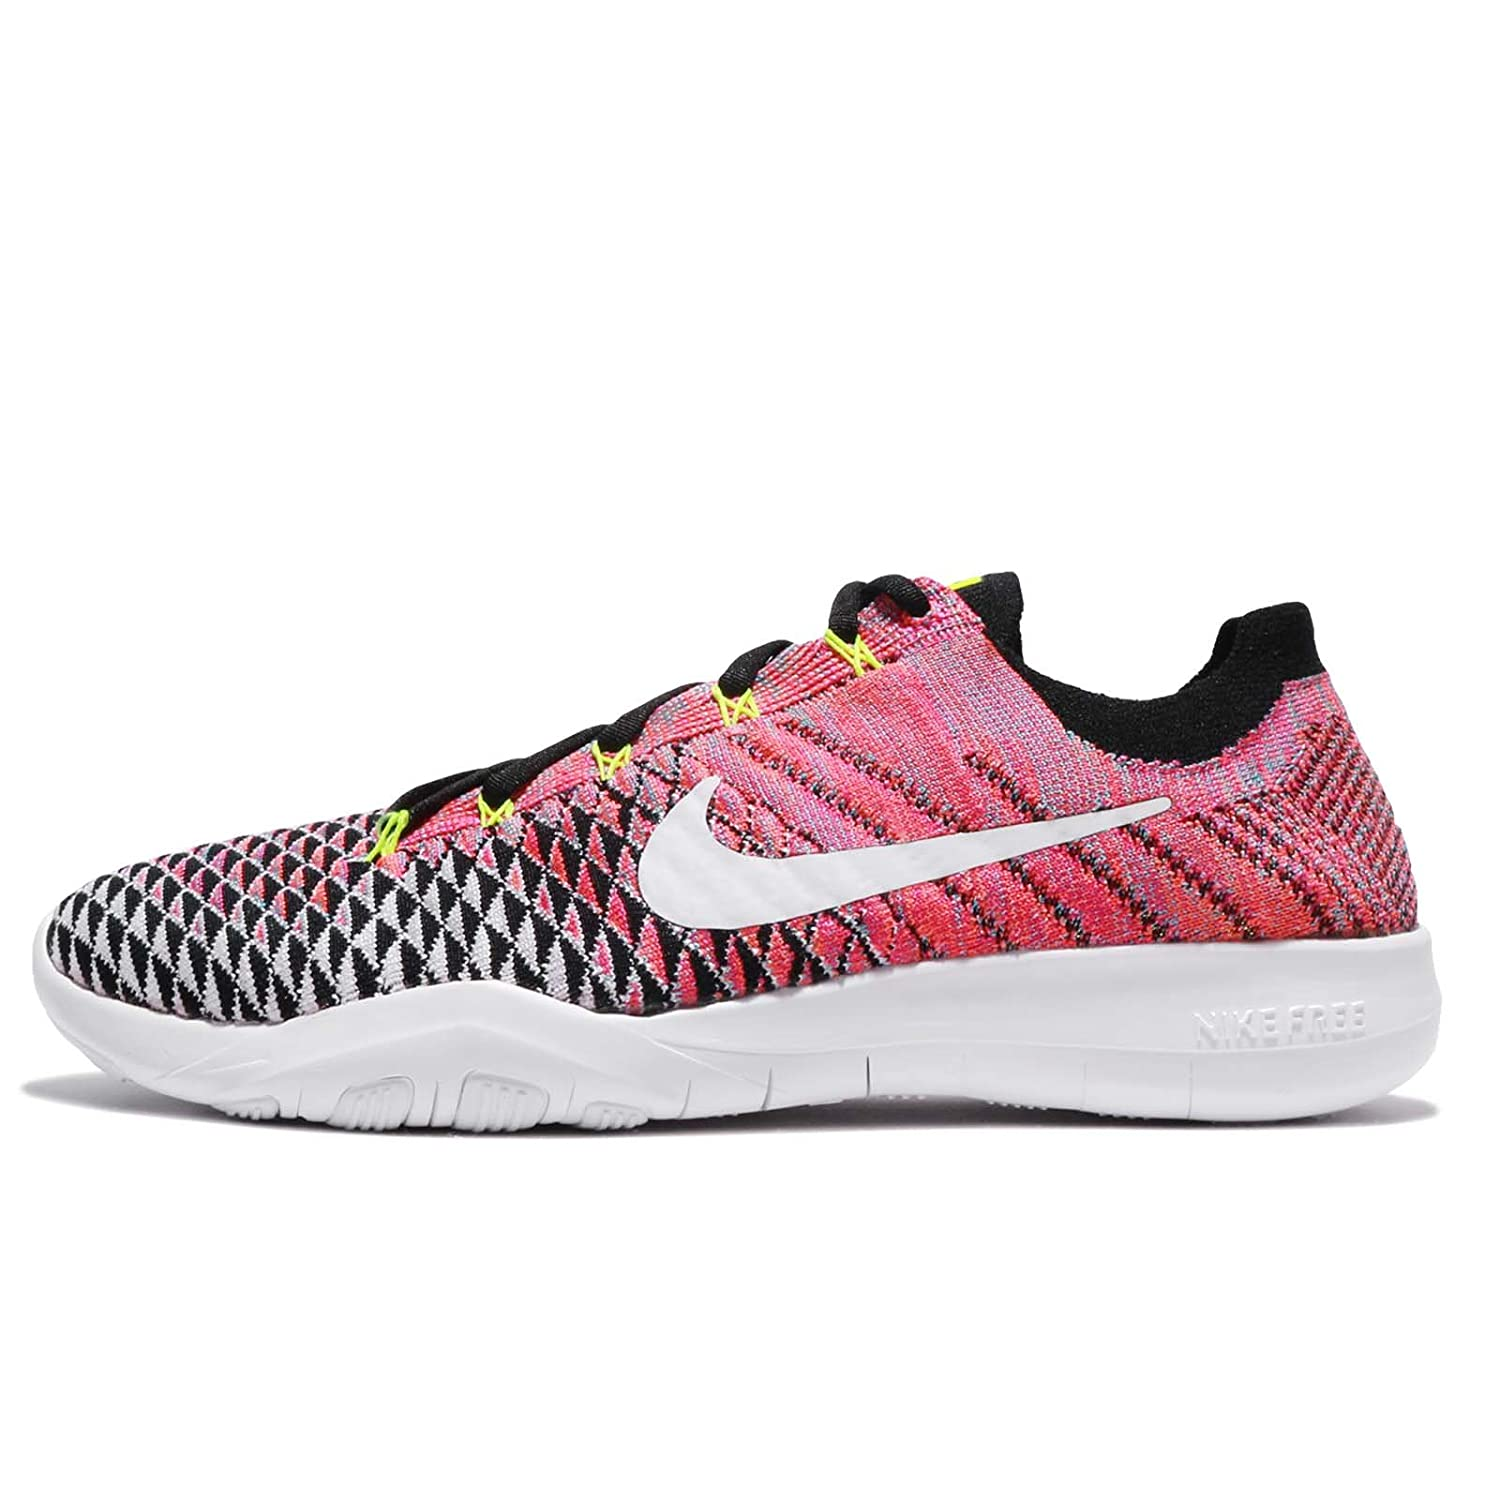 reputable site a88ee 45510 Amazon.com   Nike Women s WMNS Free TR Flyknit 2, Black White-Volt-Deadly  Pink, 6 M US   Road Running